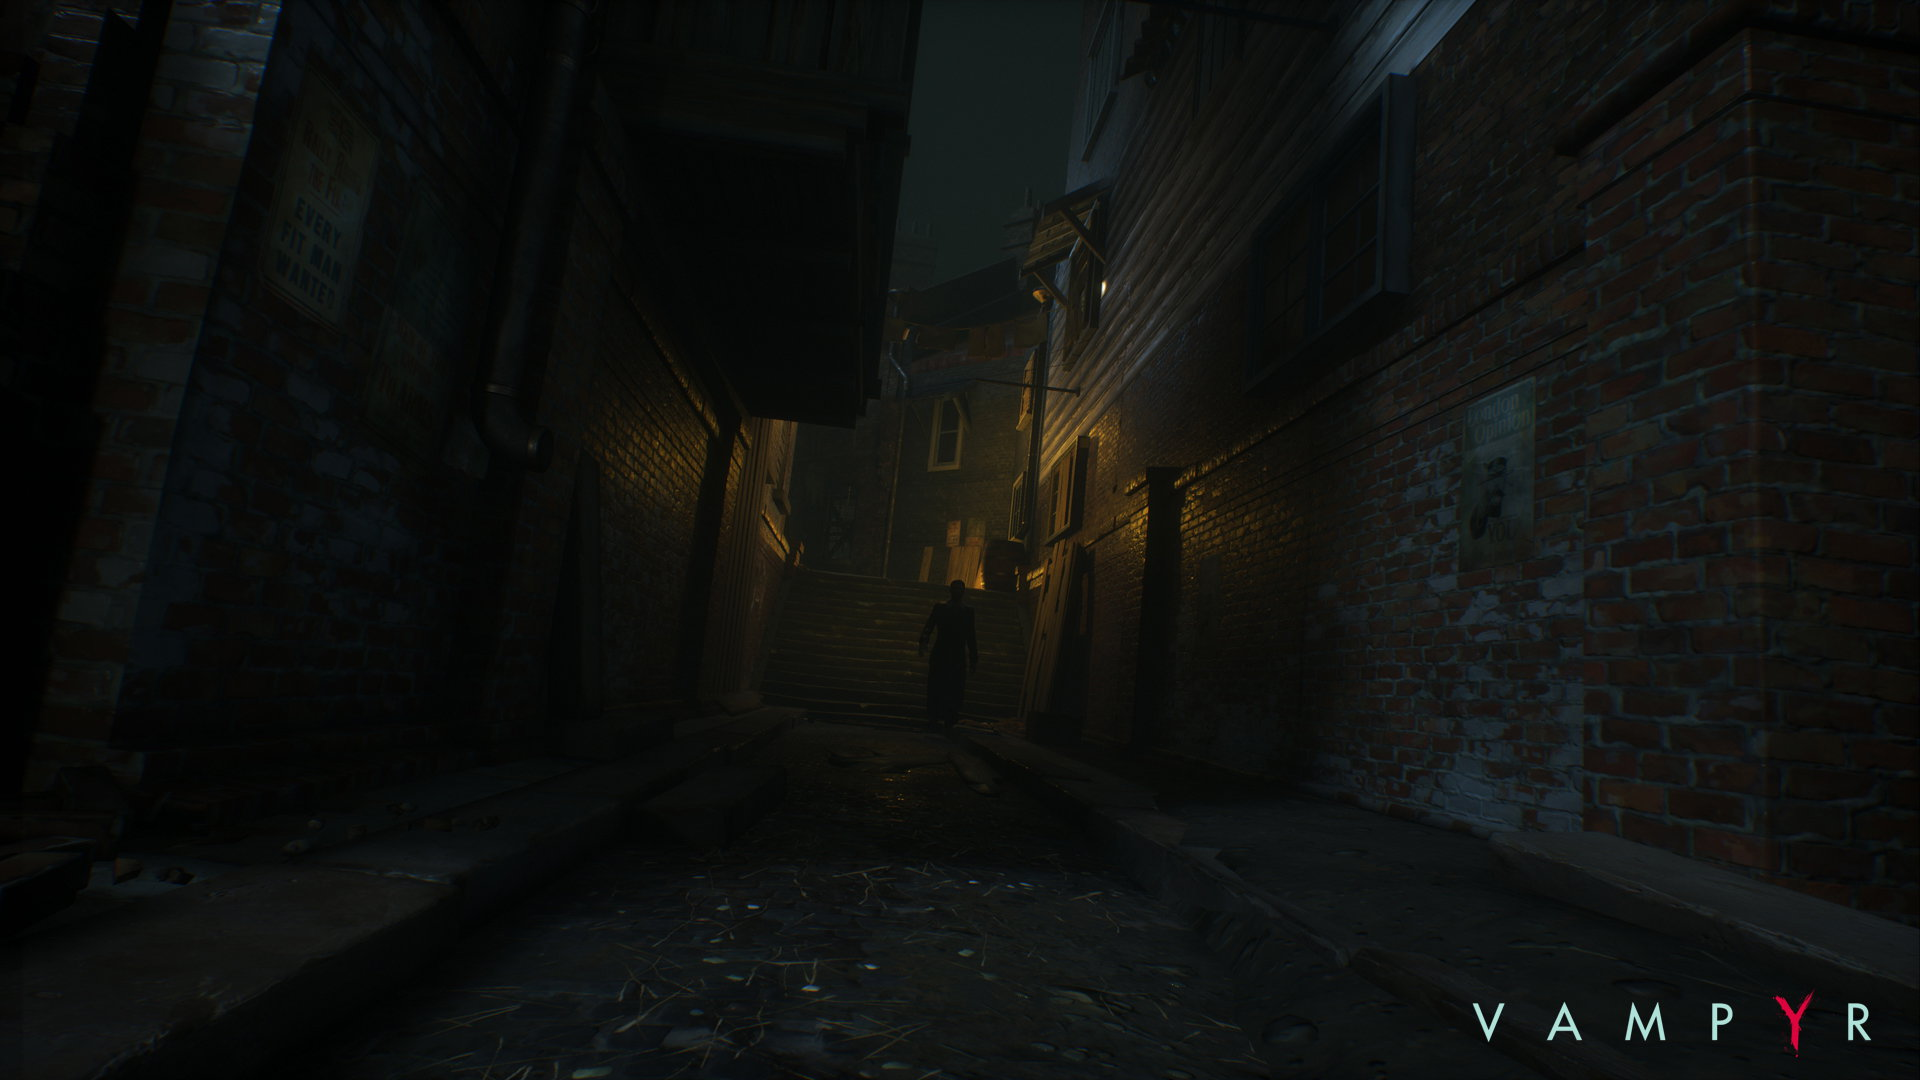 Vampyr Game, HD Games, 4k Wallpapers, Images, Backgrounds